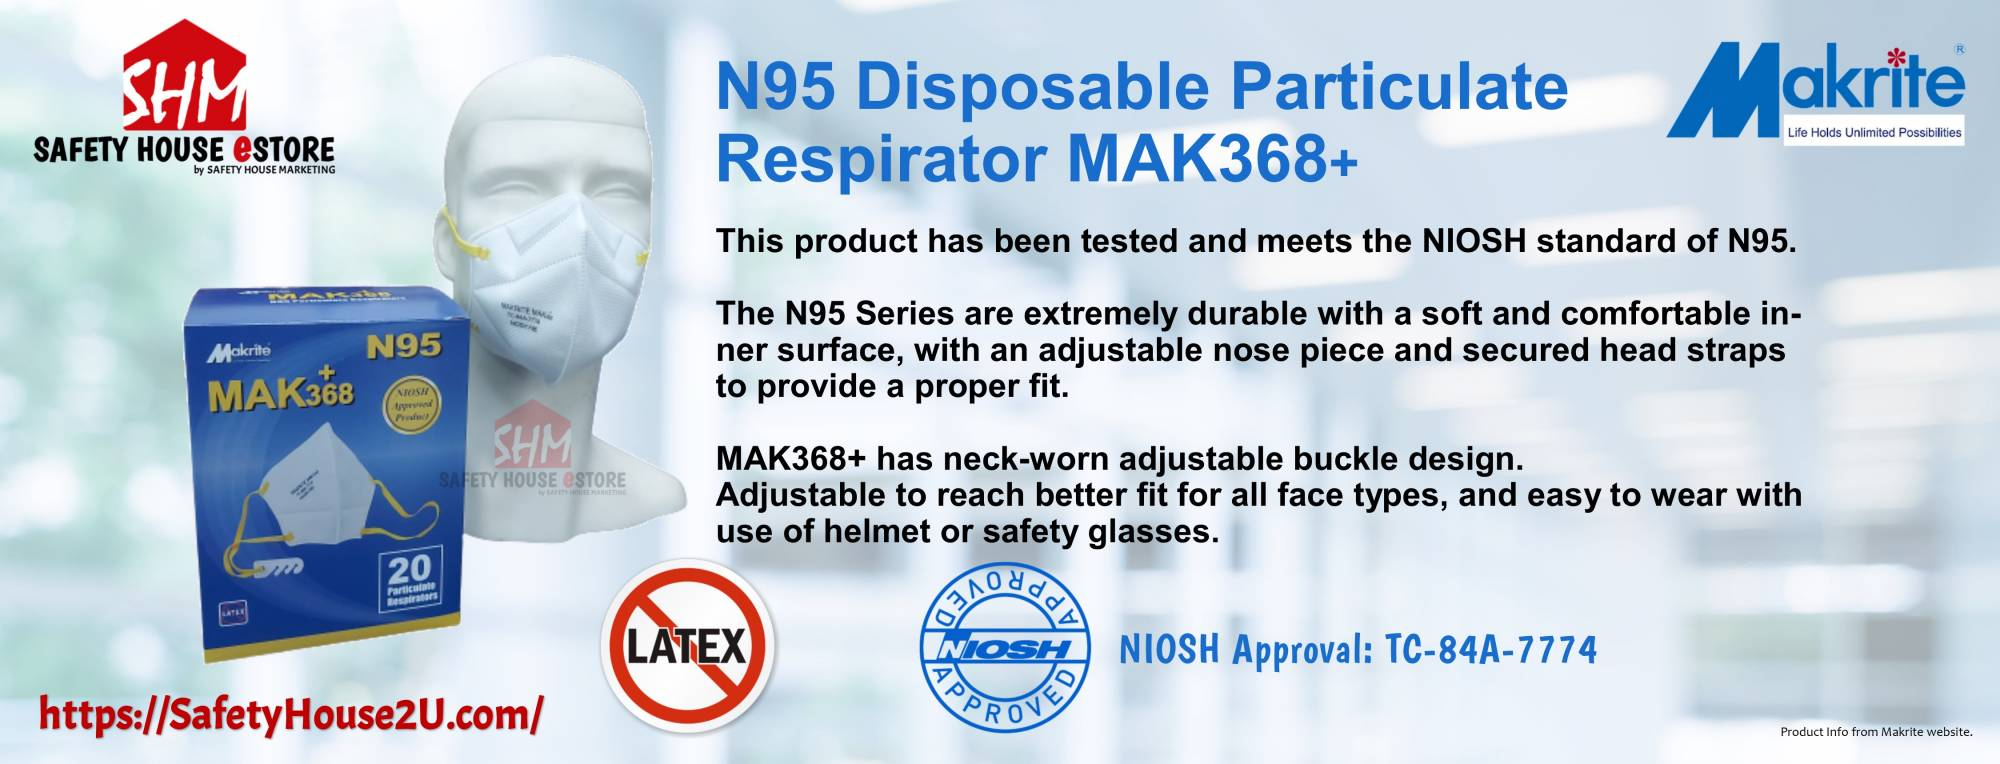 https://safetyhouse2u.com/makrite-368-n95-particulate-respirators-niosh-approved-products